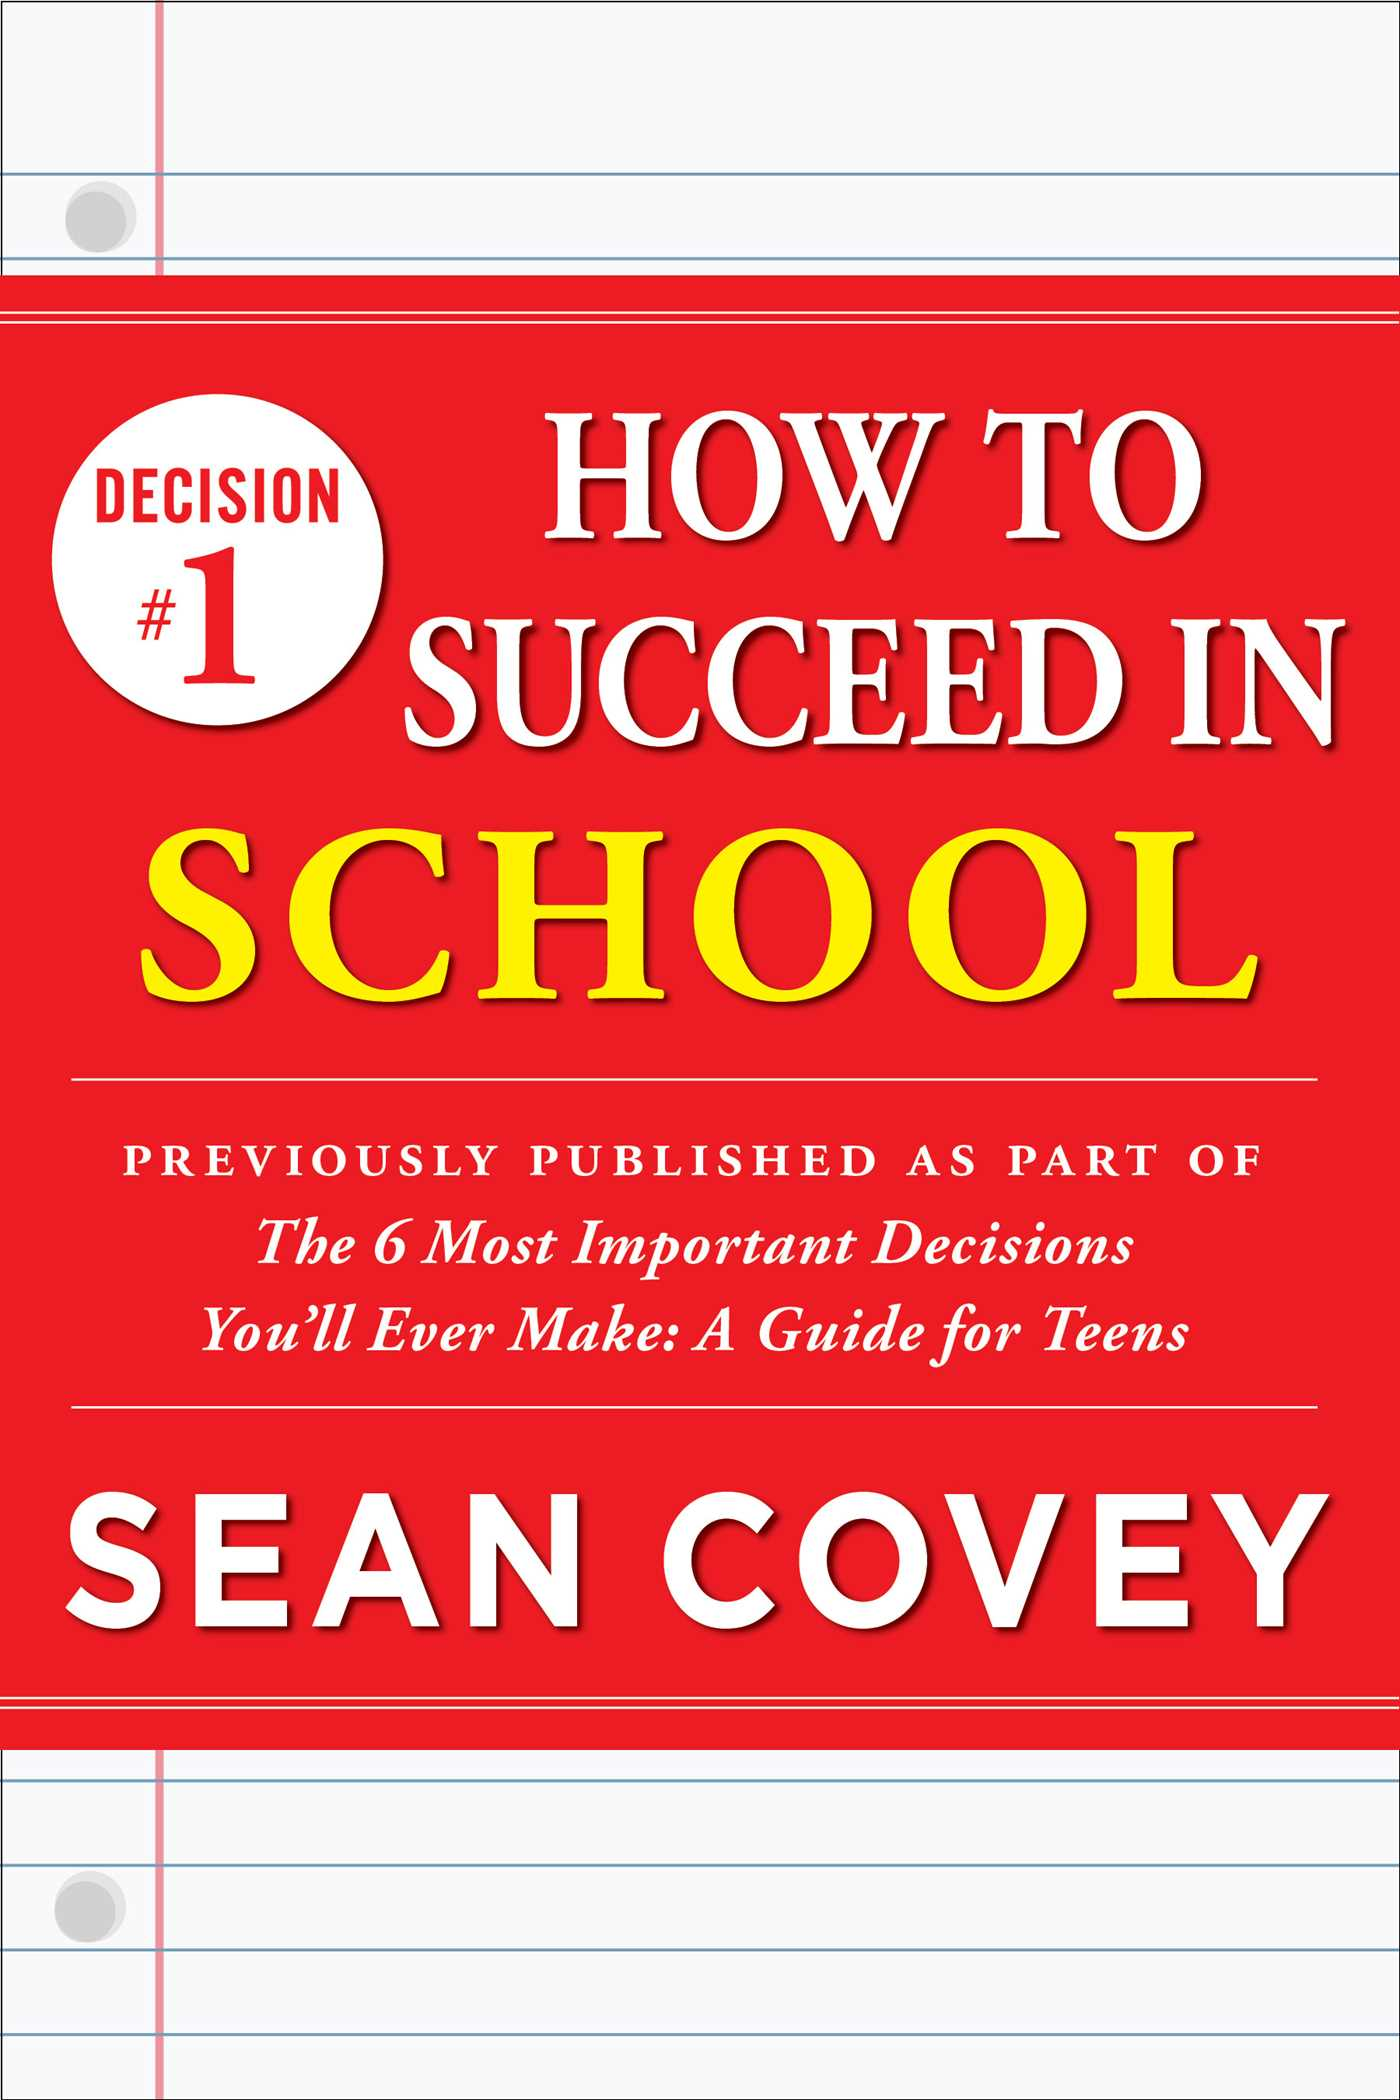 Decision 1 how to succeed in school 9781501111037 hr